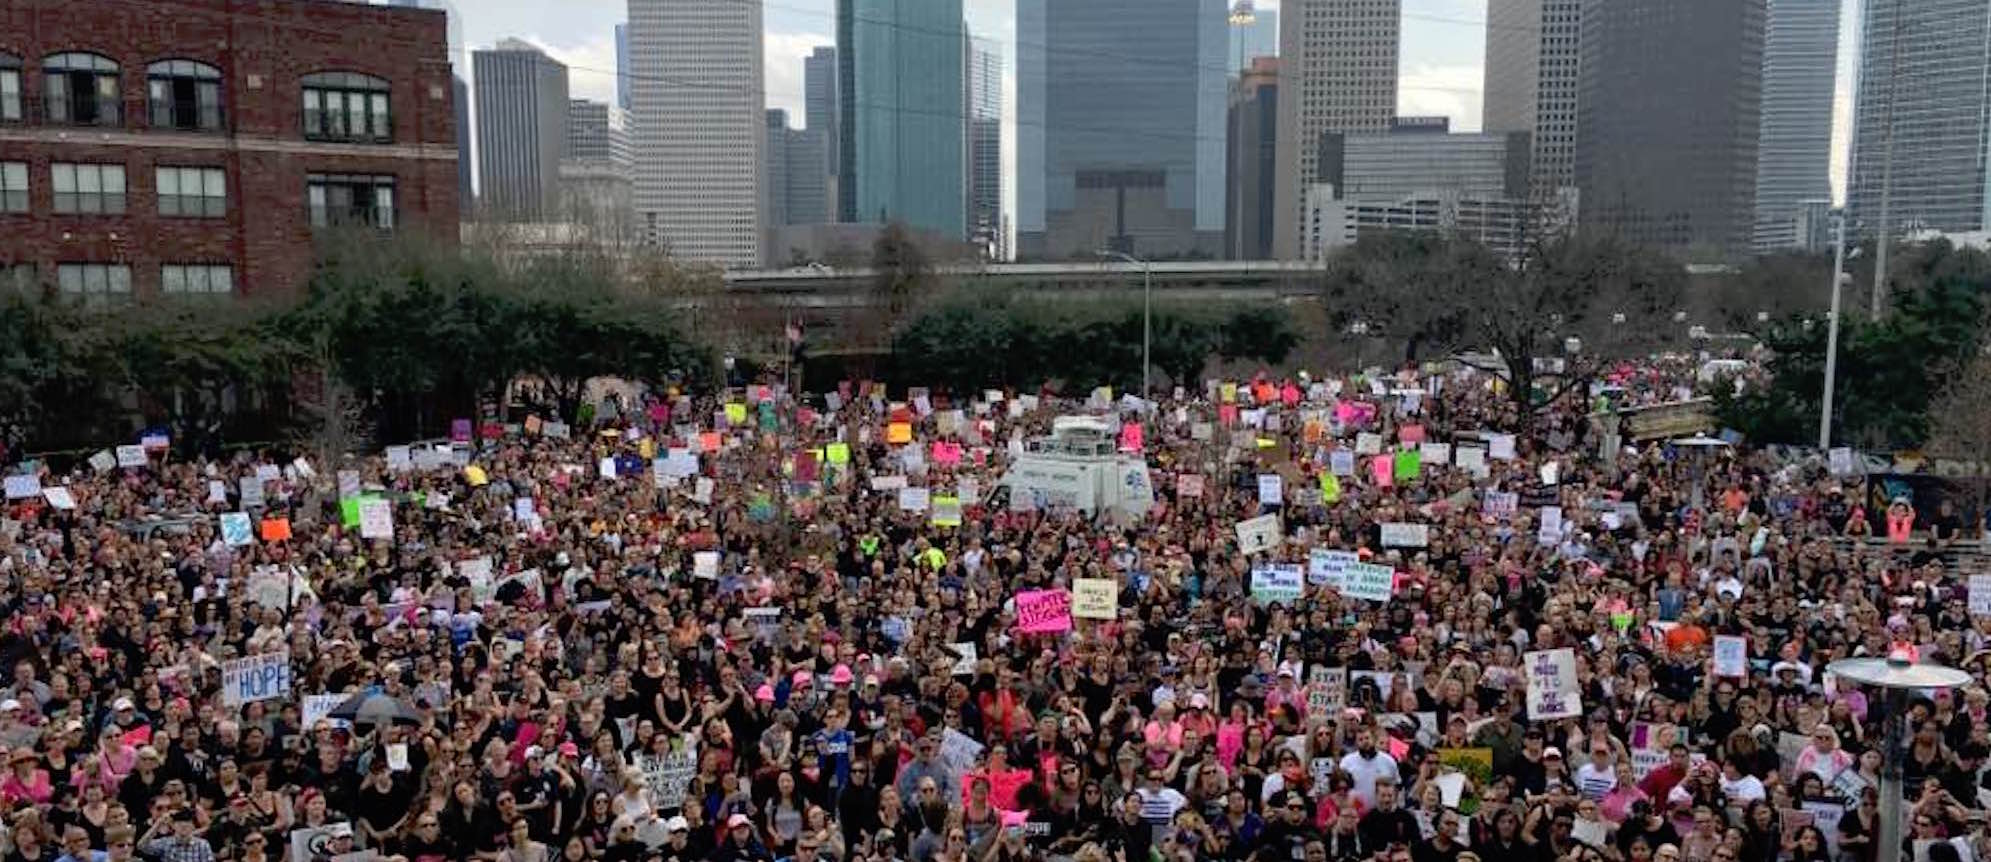 Jan_21_17_houston_womens_march_fb_header